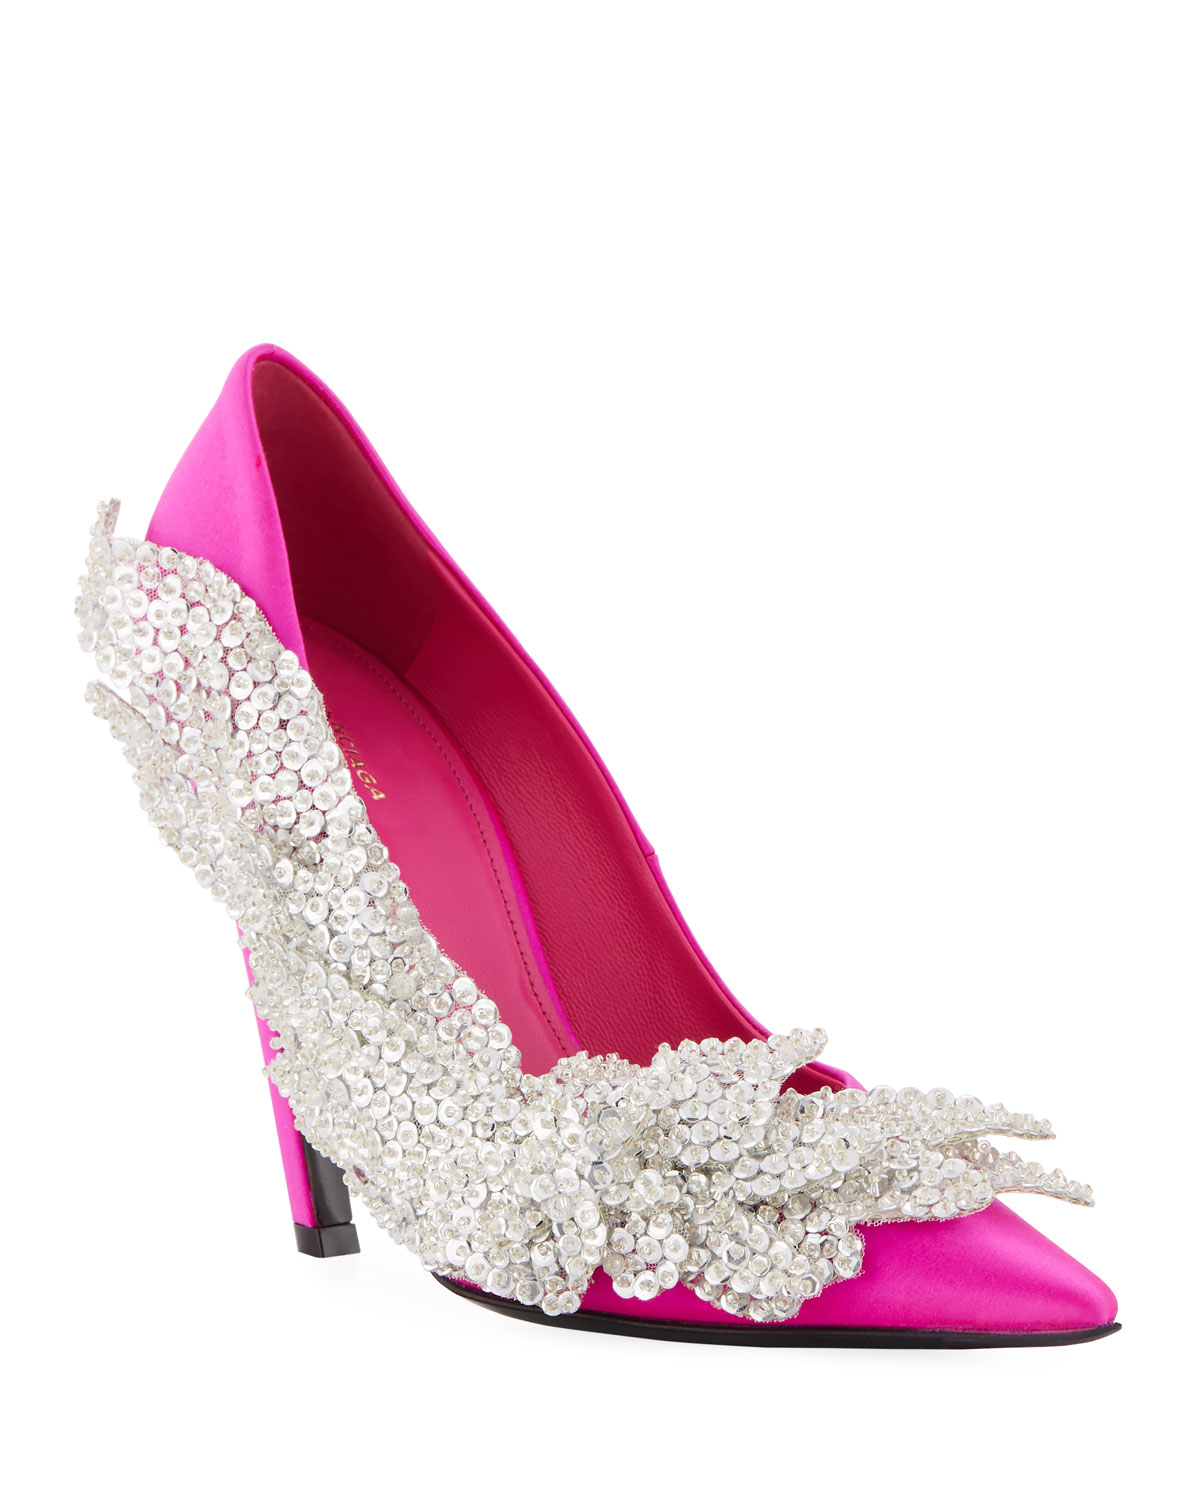 57472730efeb Balenciaga Crystal-Embellished Satin Pumps